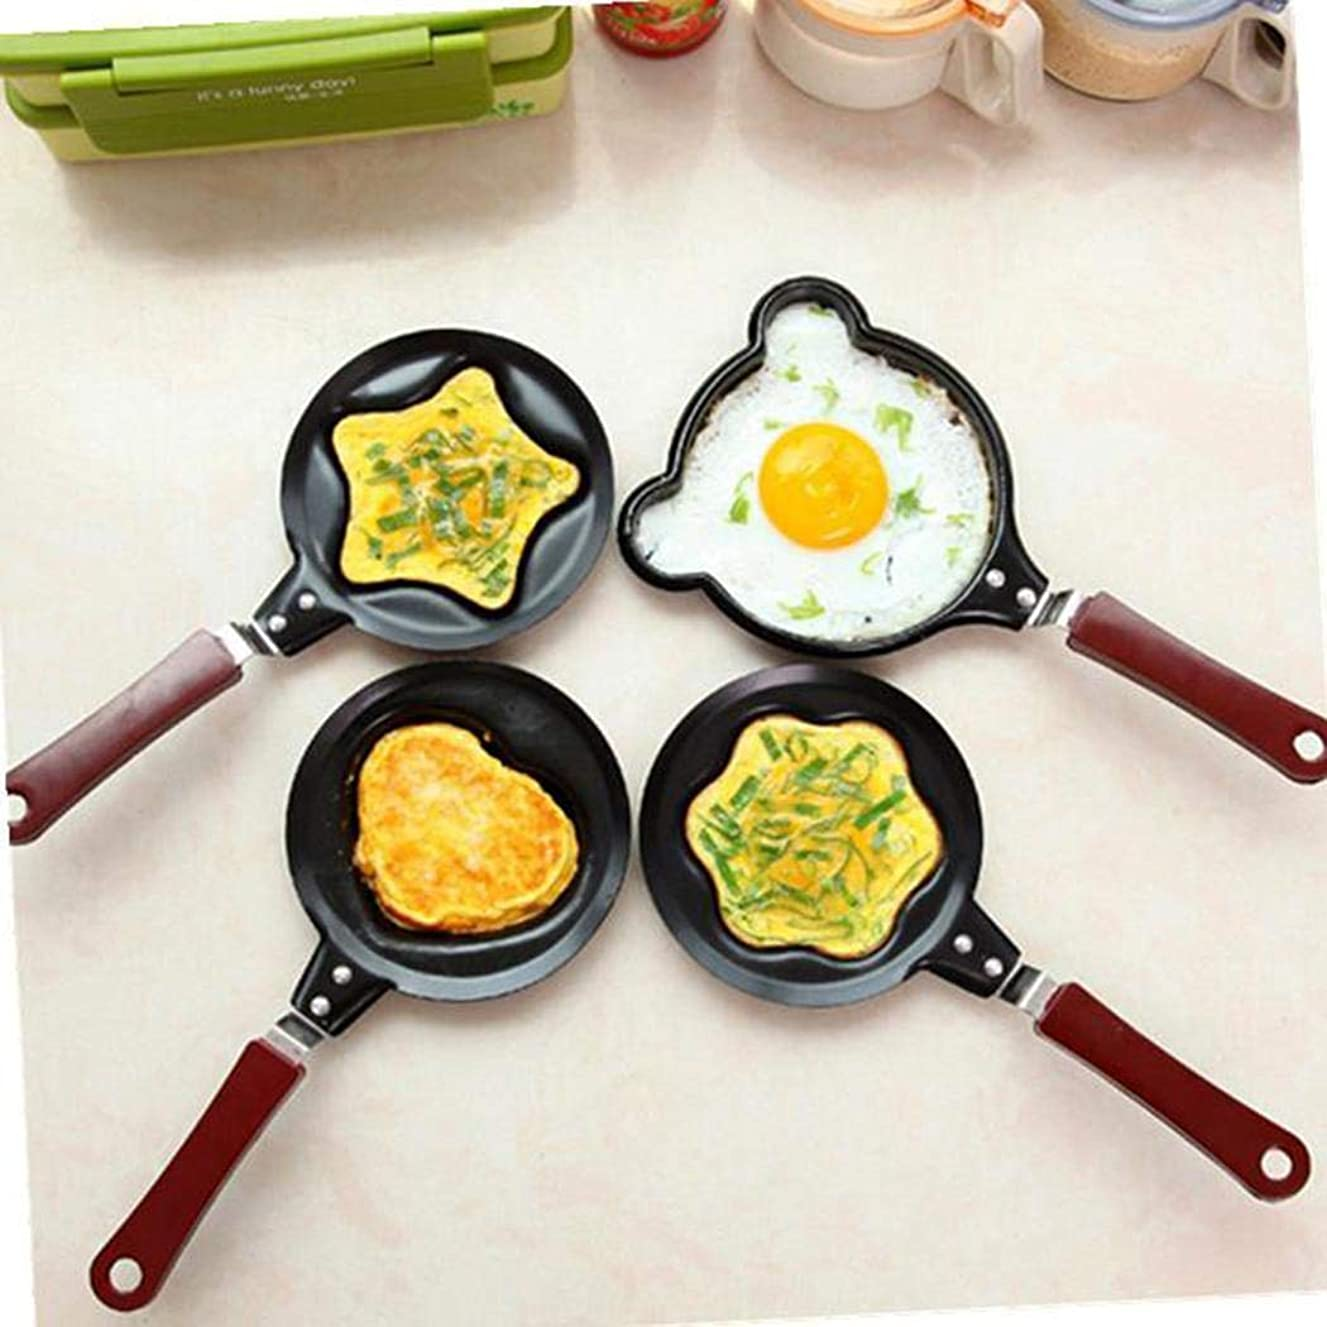 Pinsparkle Mini Egg Frying Pan Handheld Kitchen Non-Stick Omelette Pancake Molds Tool Grill Pans